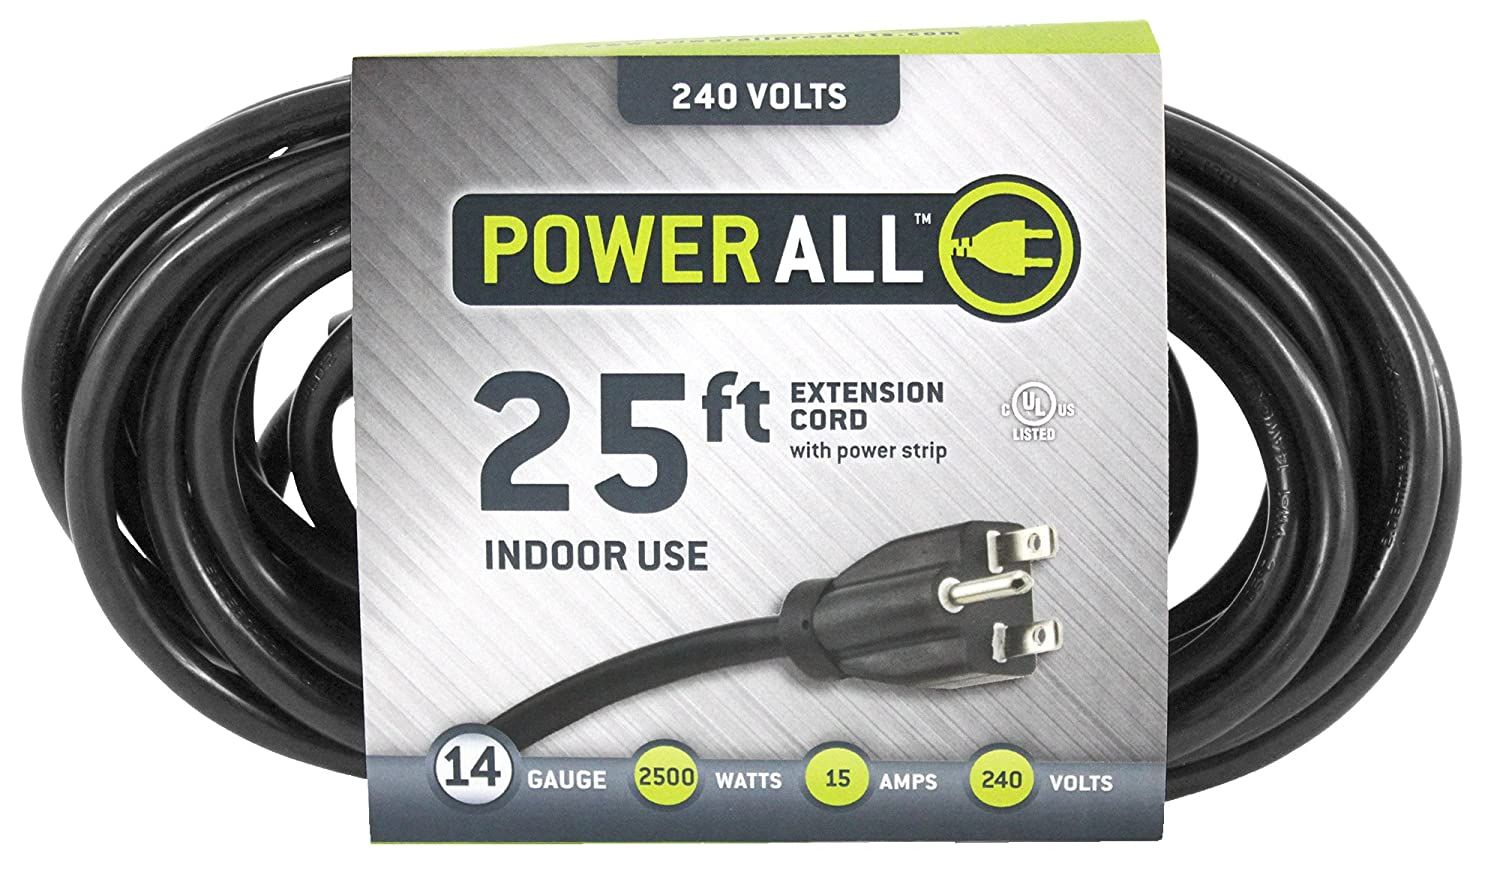 Power All – Extension Cord – 3 Outlets – 240V 25 ft. 14 Gauge – Moisture Resistant, Flexible, and Durable for Indoor Use